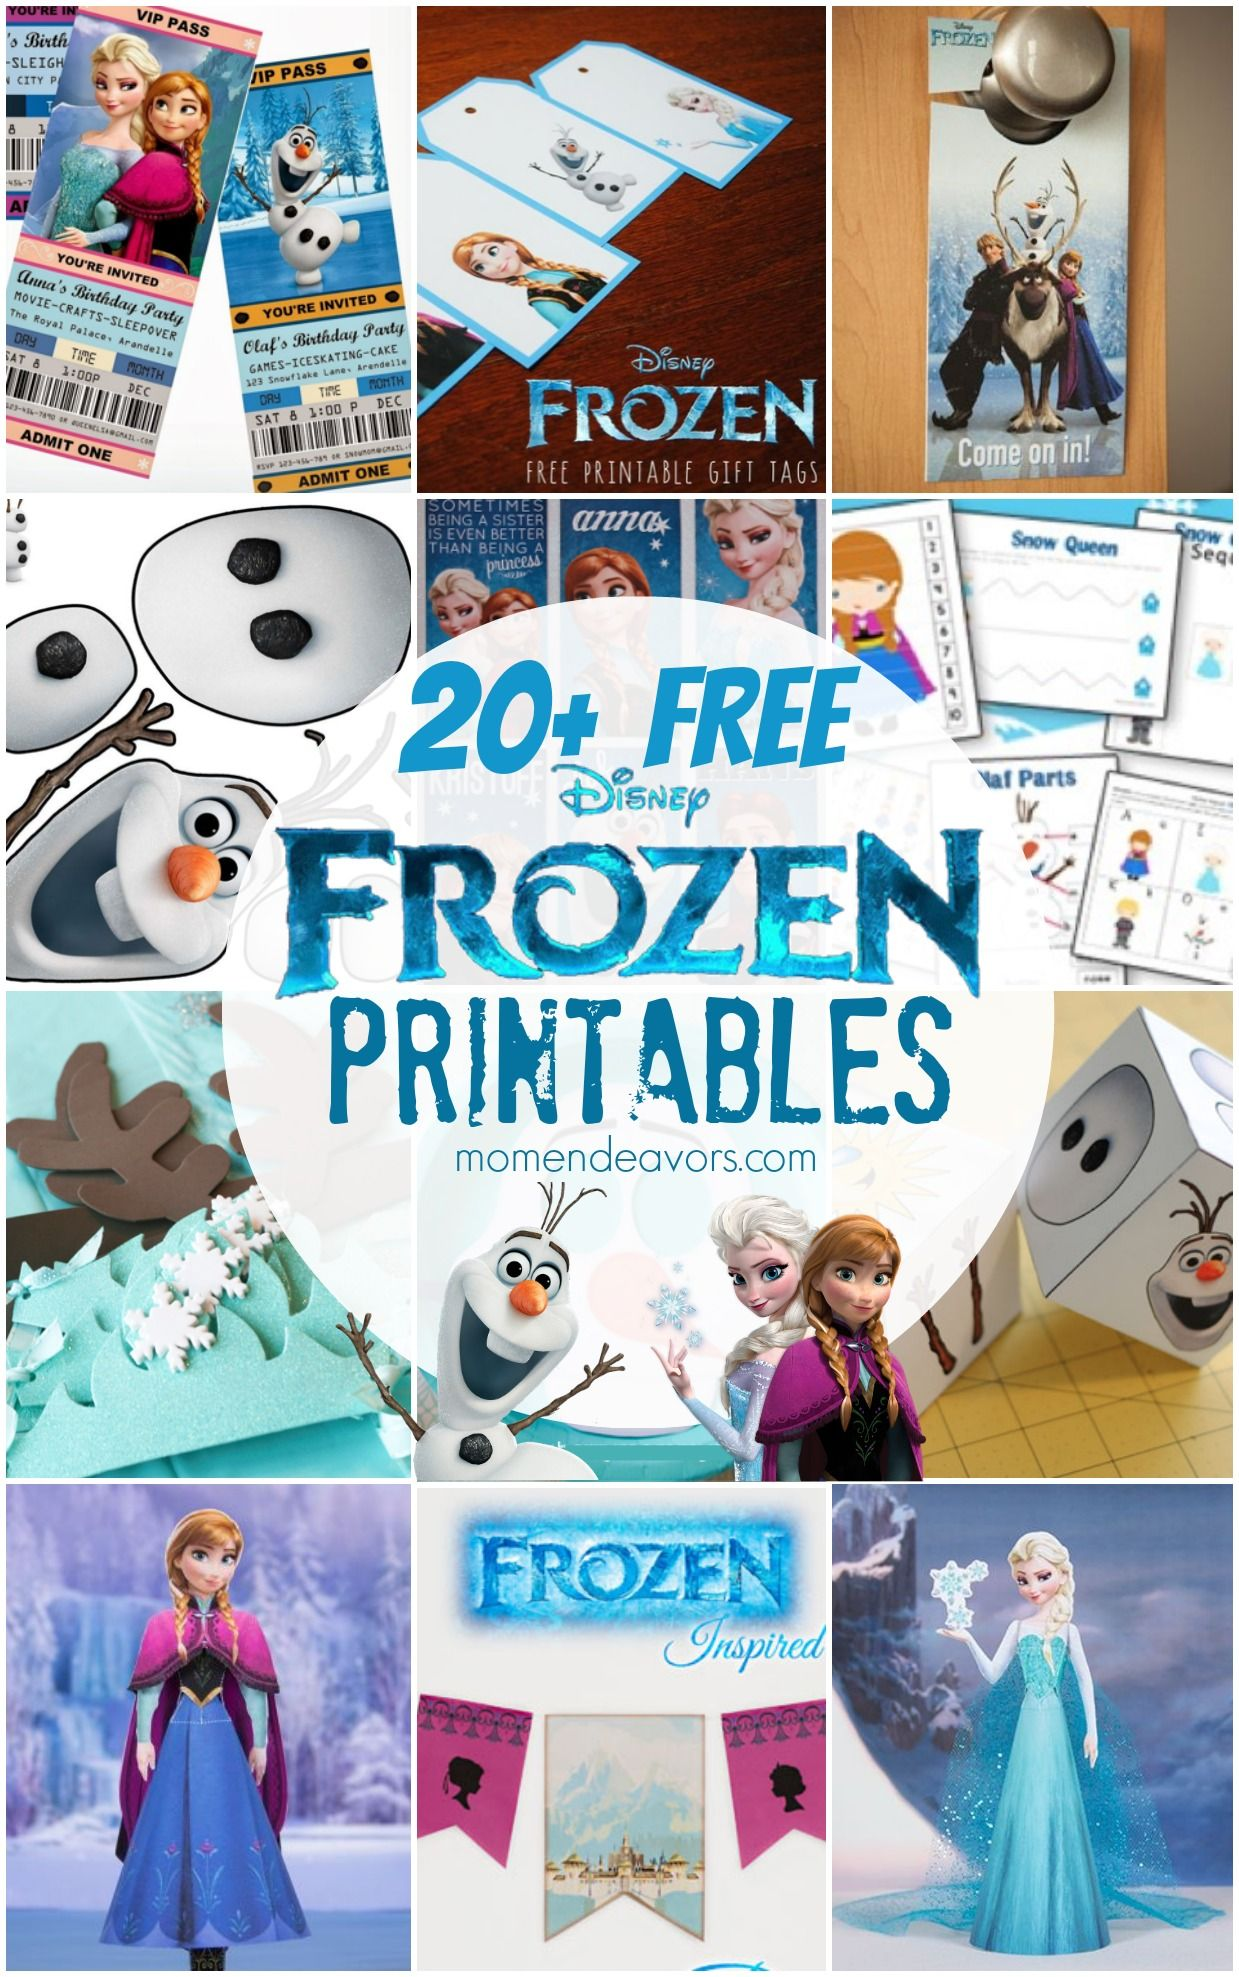 frozen printable on pinterest free frozen invitations frozen invitations and frozen banner. Black Bedroom Furniture Sets. Home Design Ideas